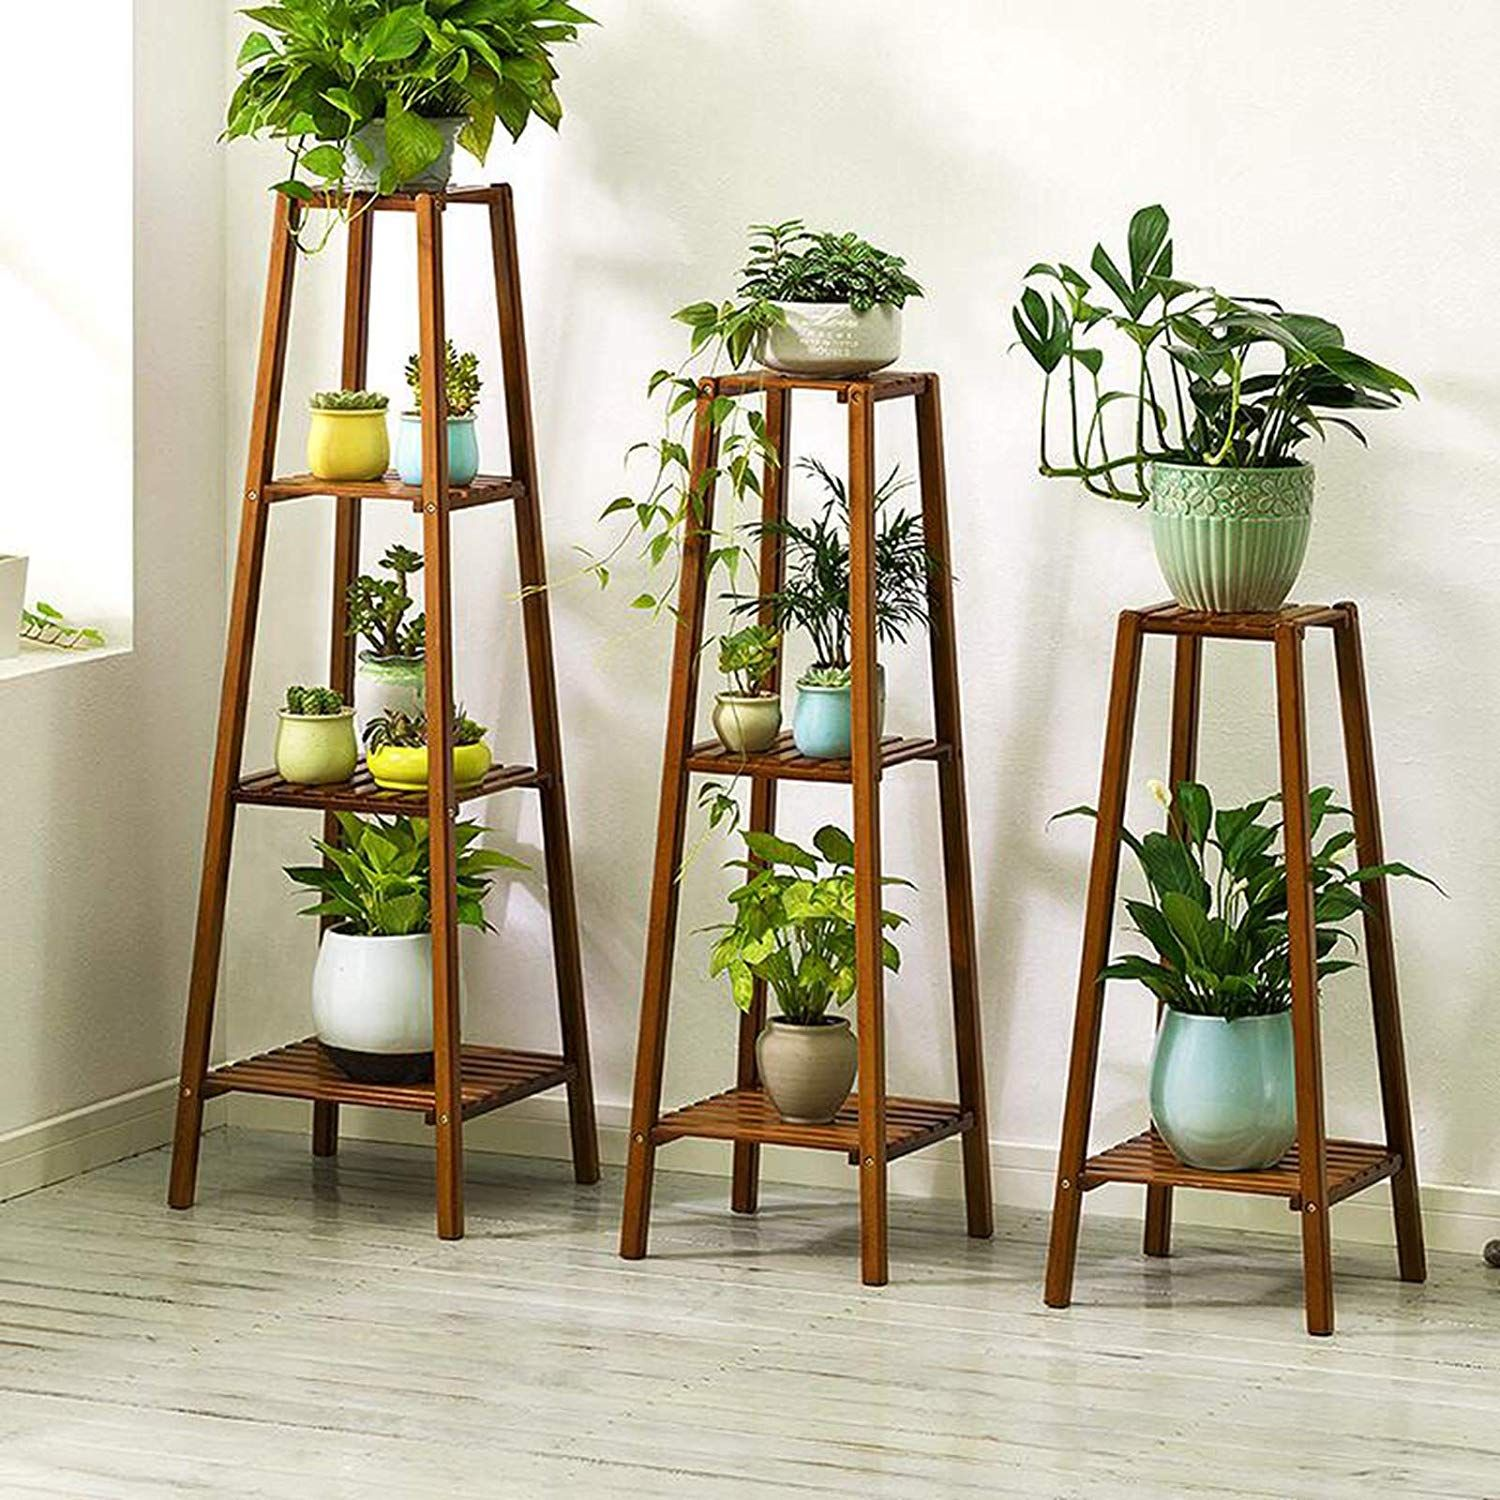 Home in 2020 Tall plant stands, House plants decor, Diy